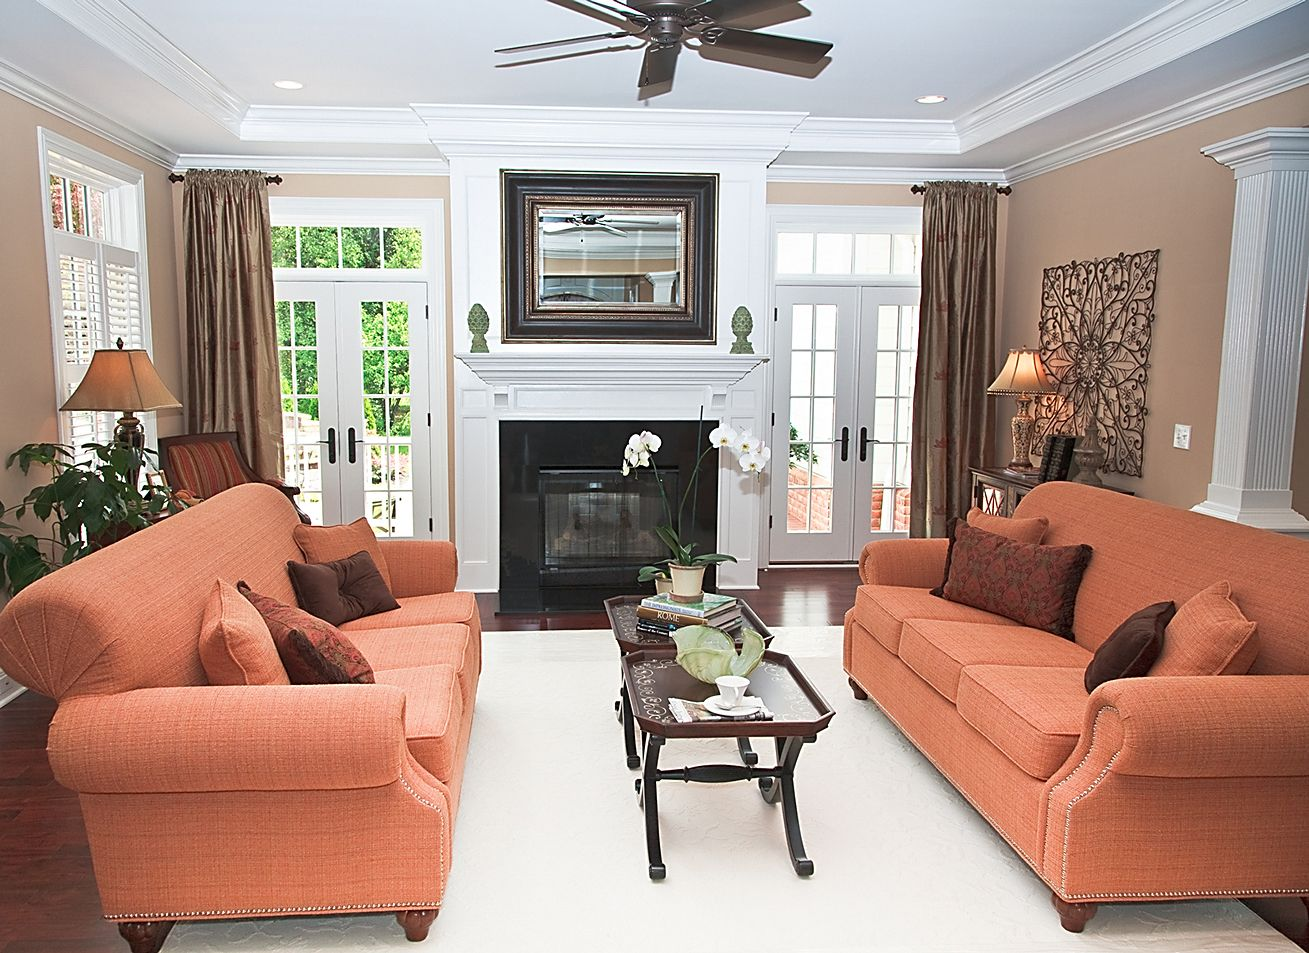 plain living room ideas no tv with fireplace and inspiration